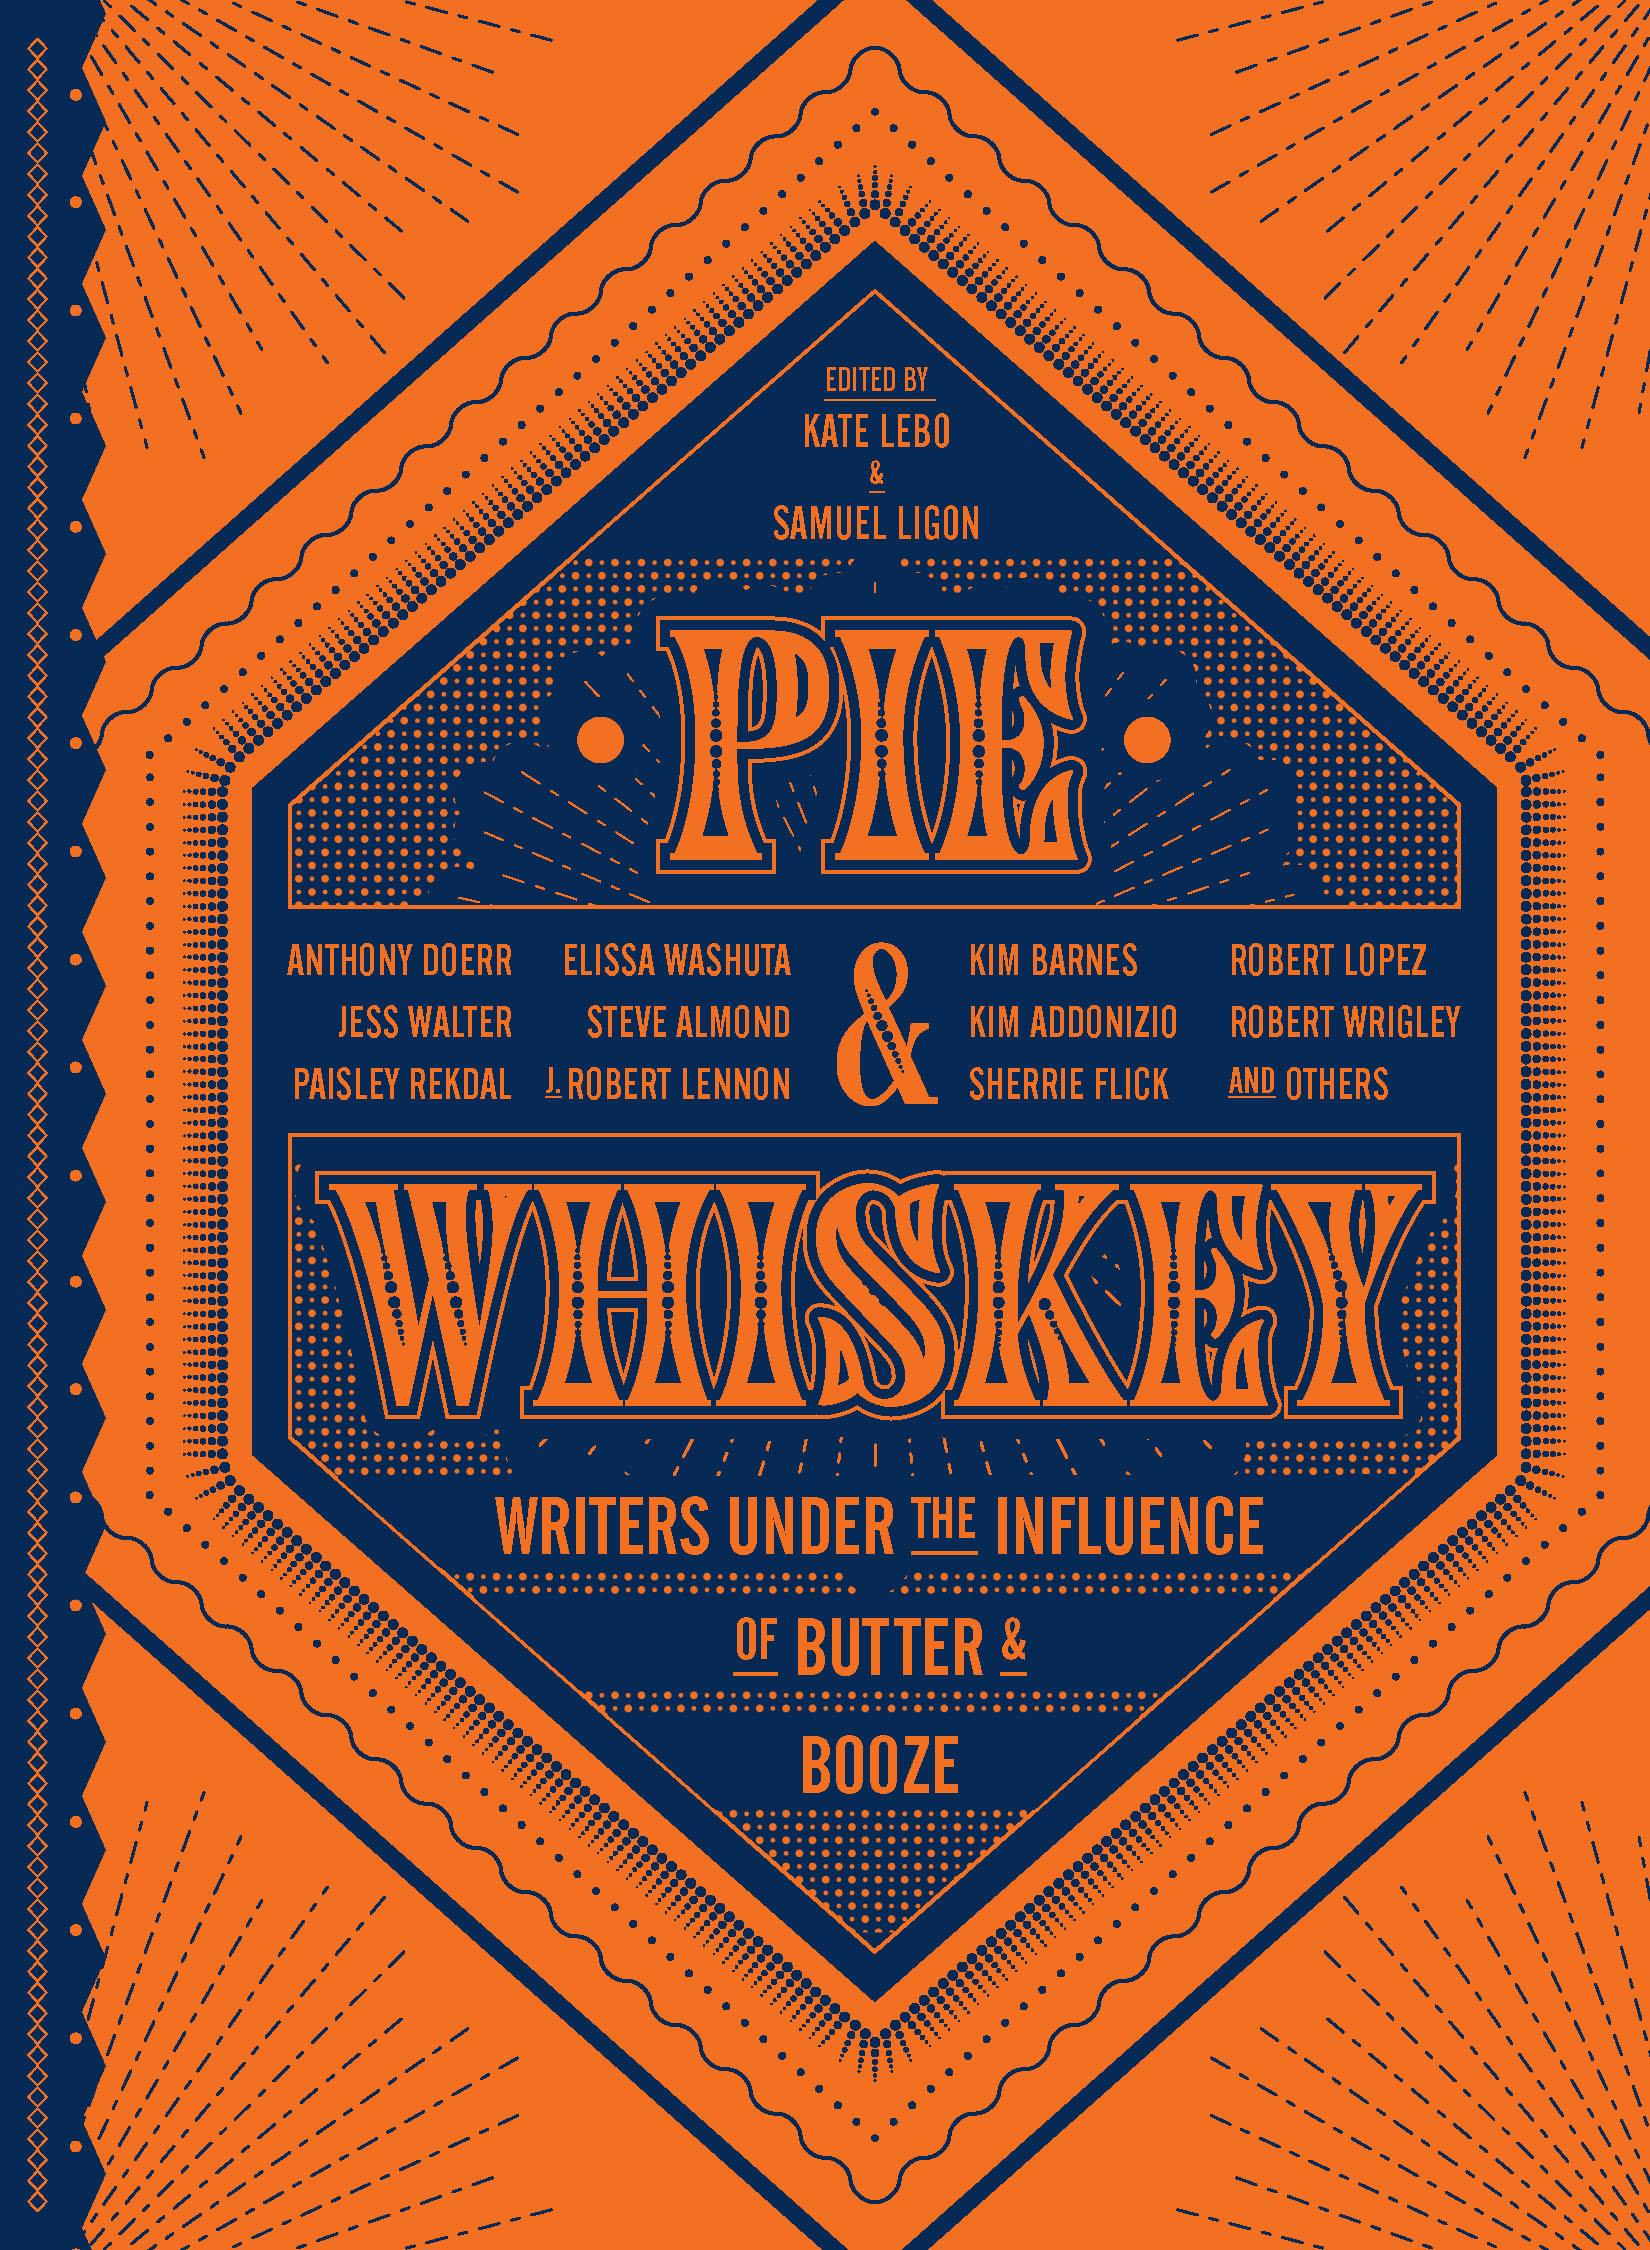 Pie & Whiskey, on sale on October 24th. (Image courtesy of Sasquatch Books).